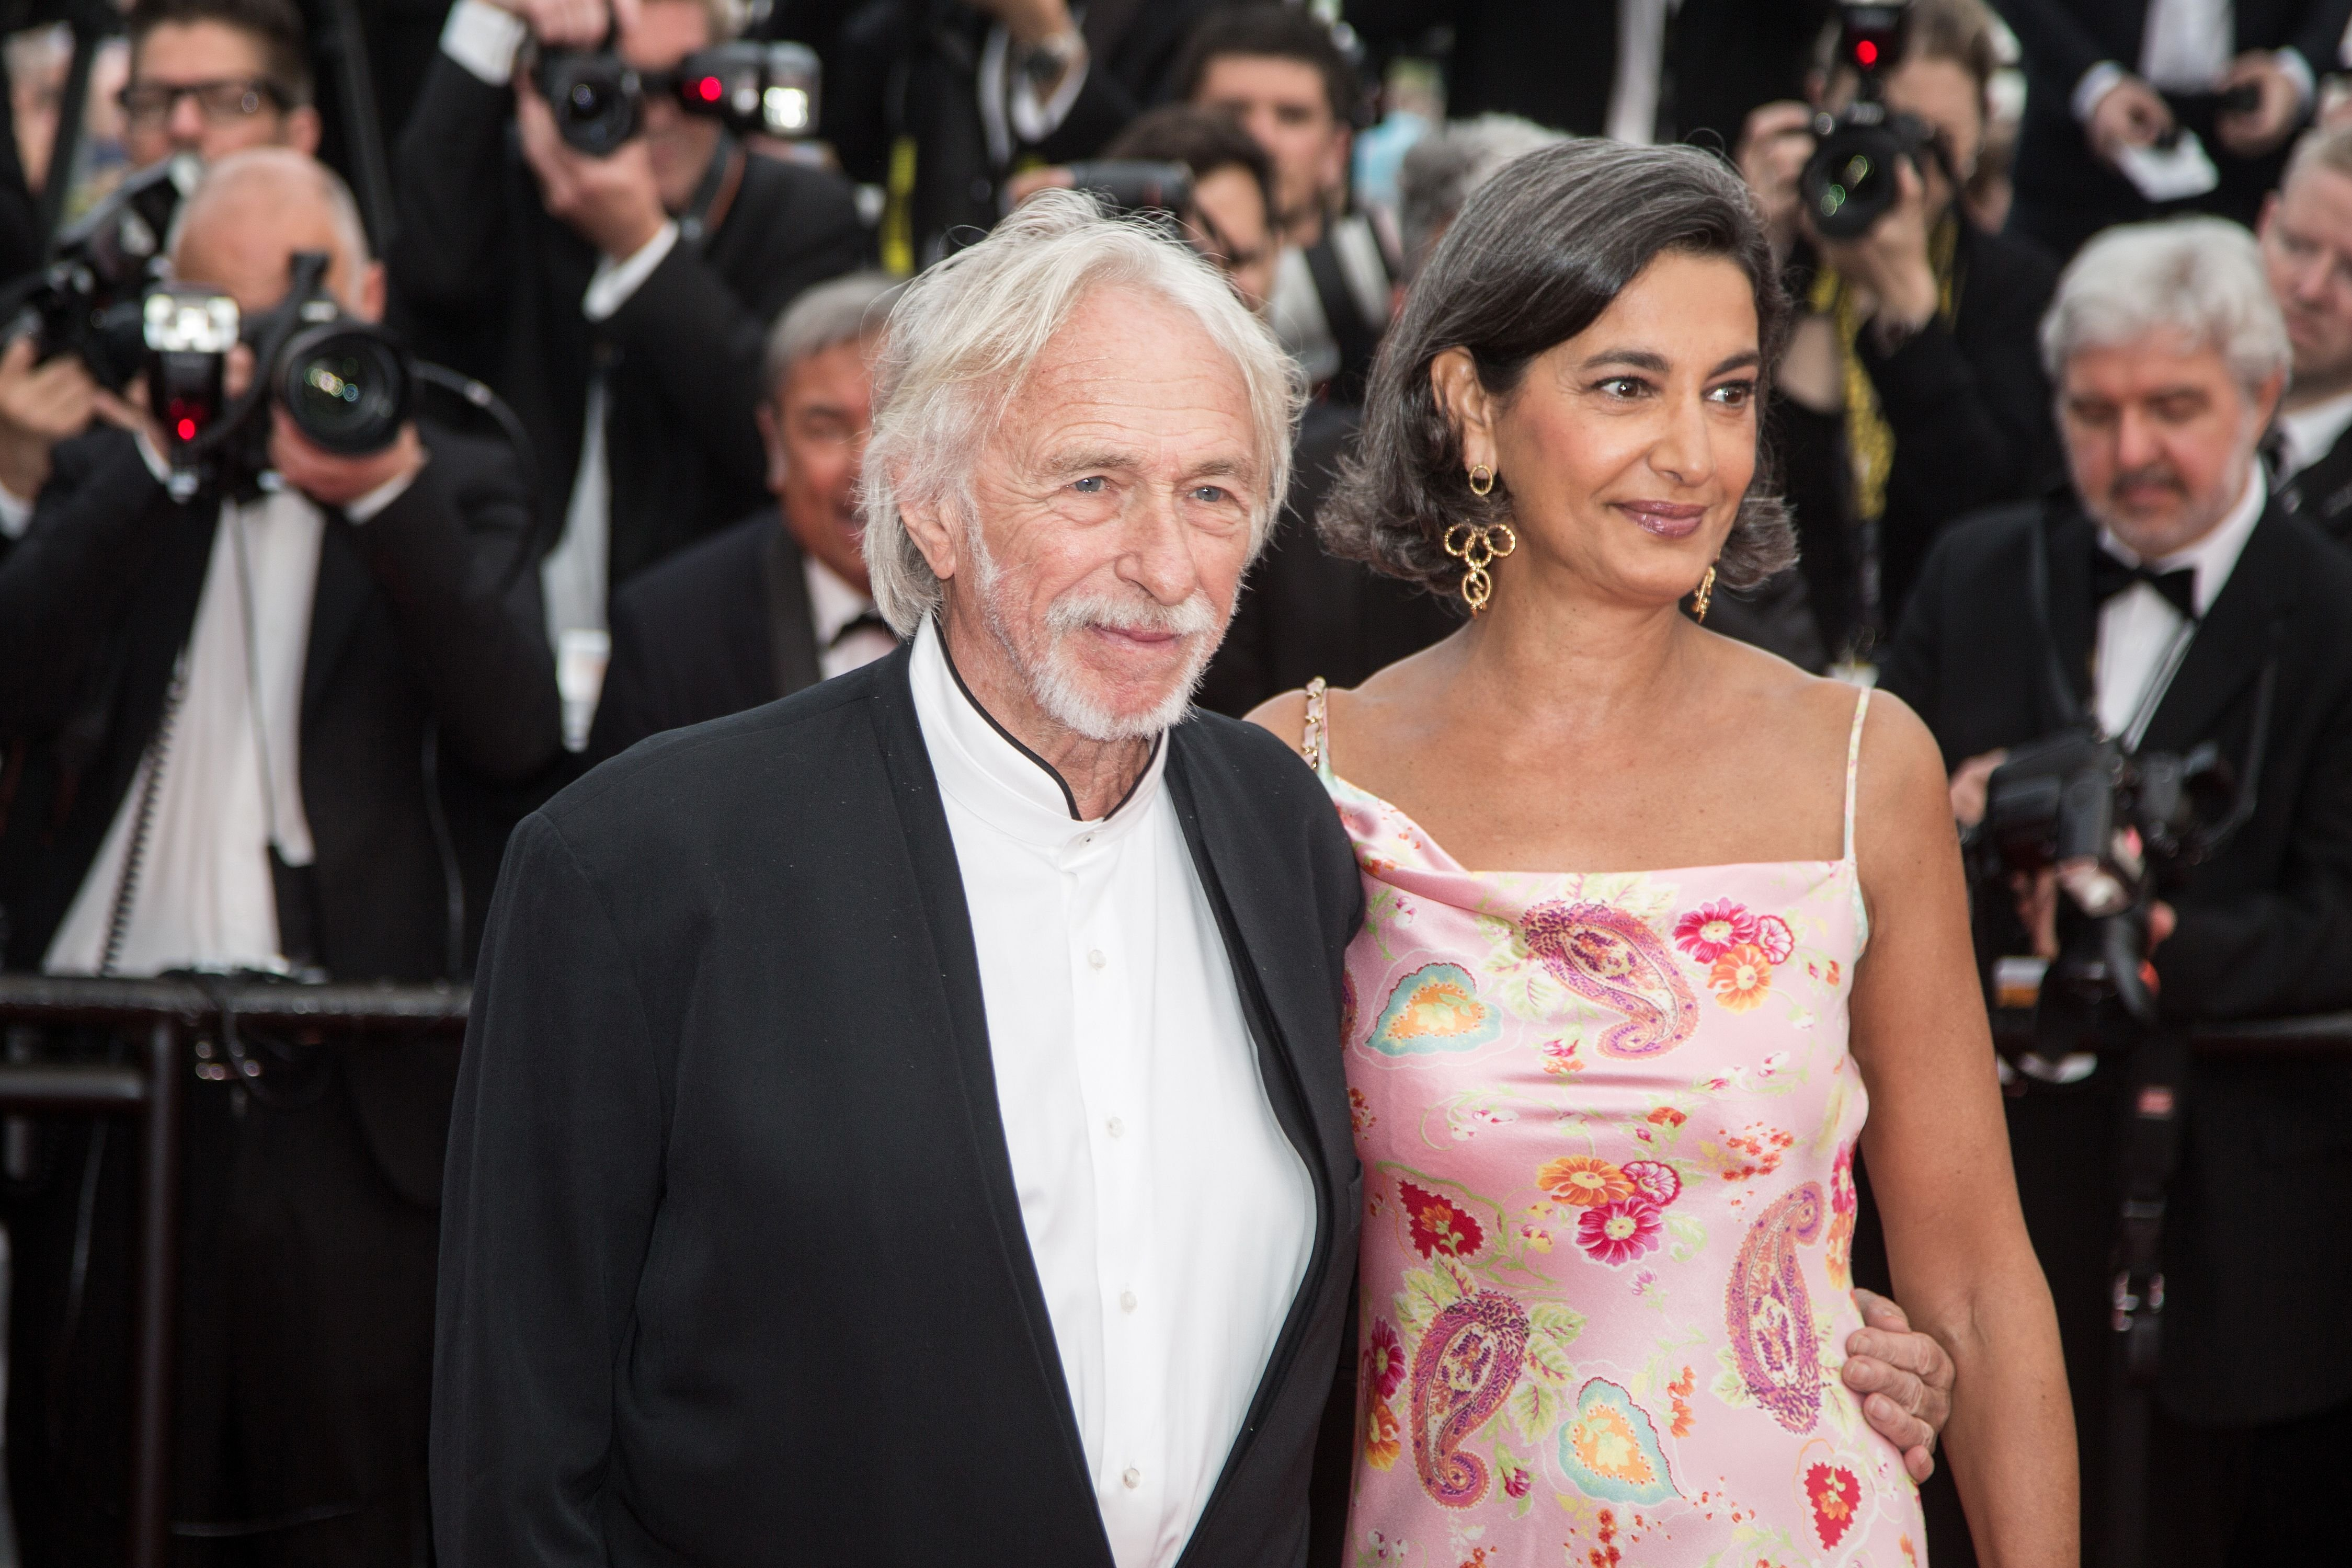 L'acteur français Pierre Richard et Ceyla Lacerda. | Photo : shutterstock